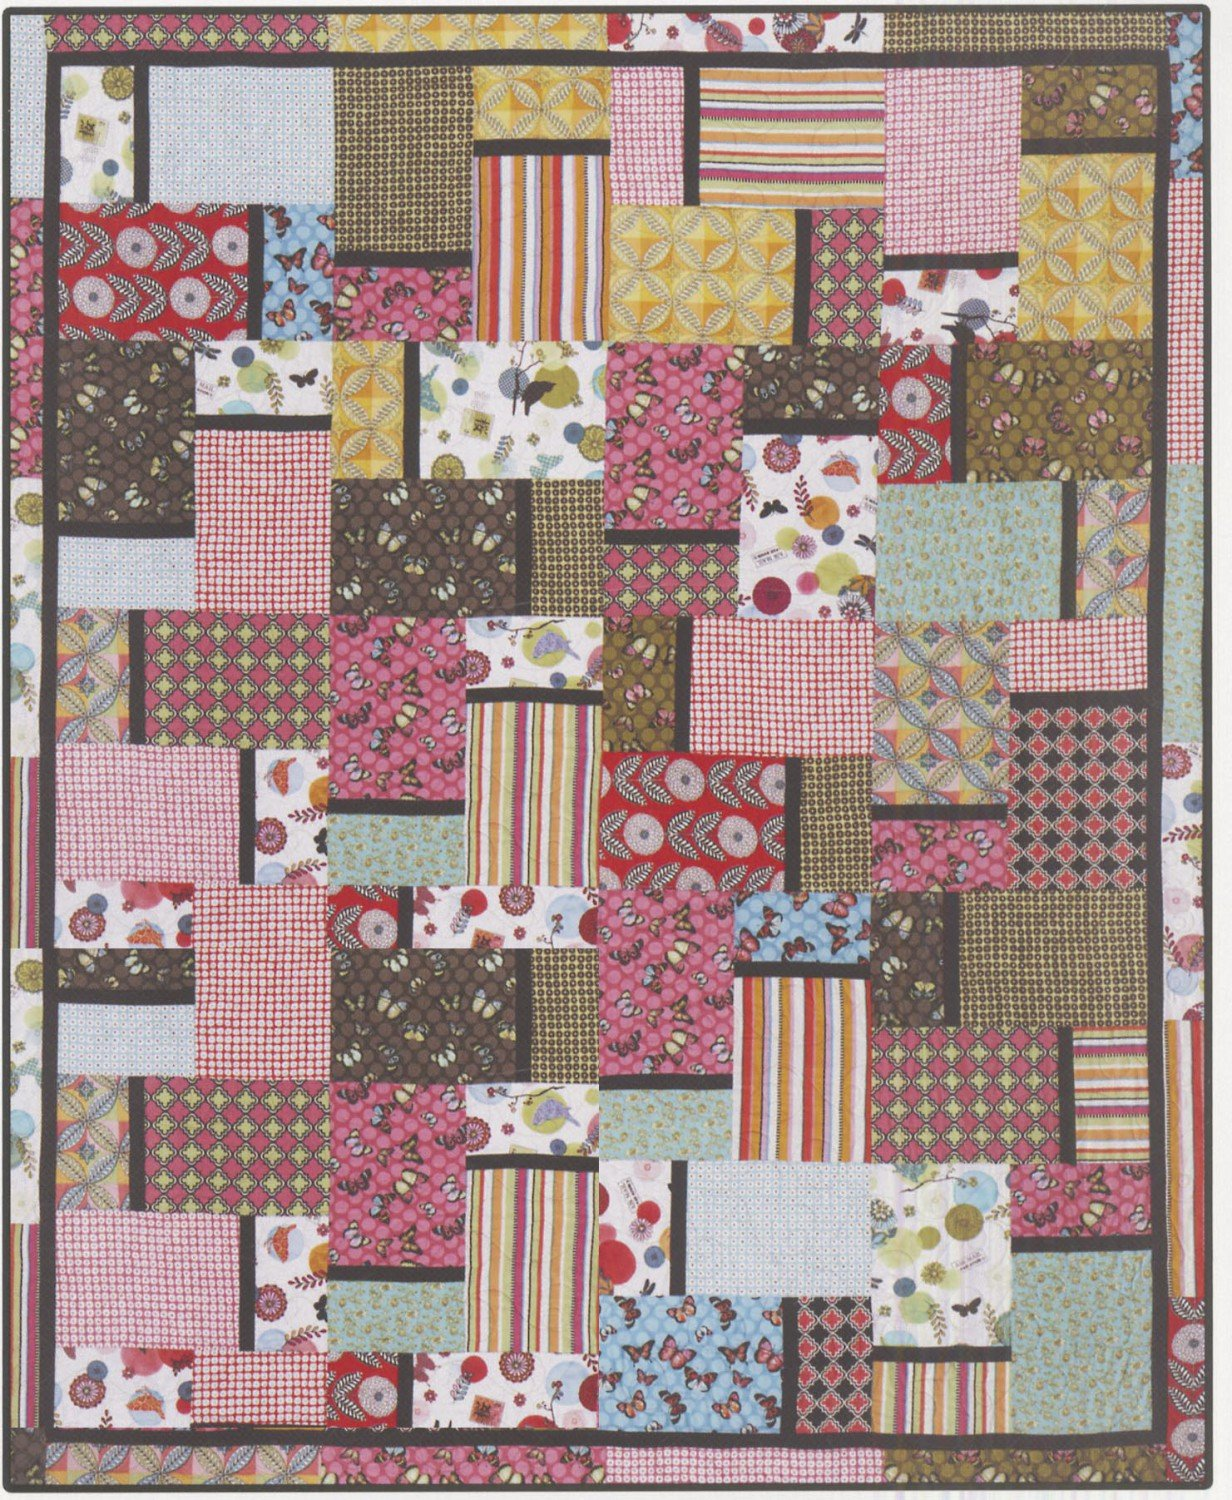 Big & Bold from Cozy Quilt Designs